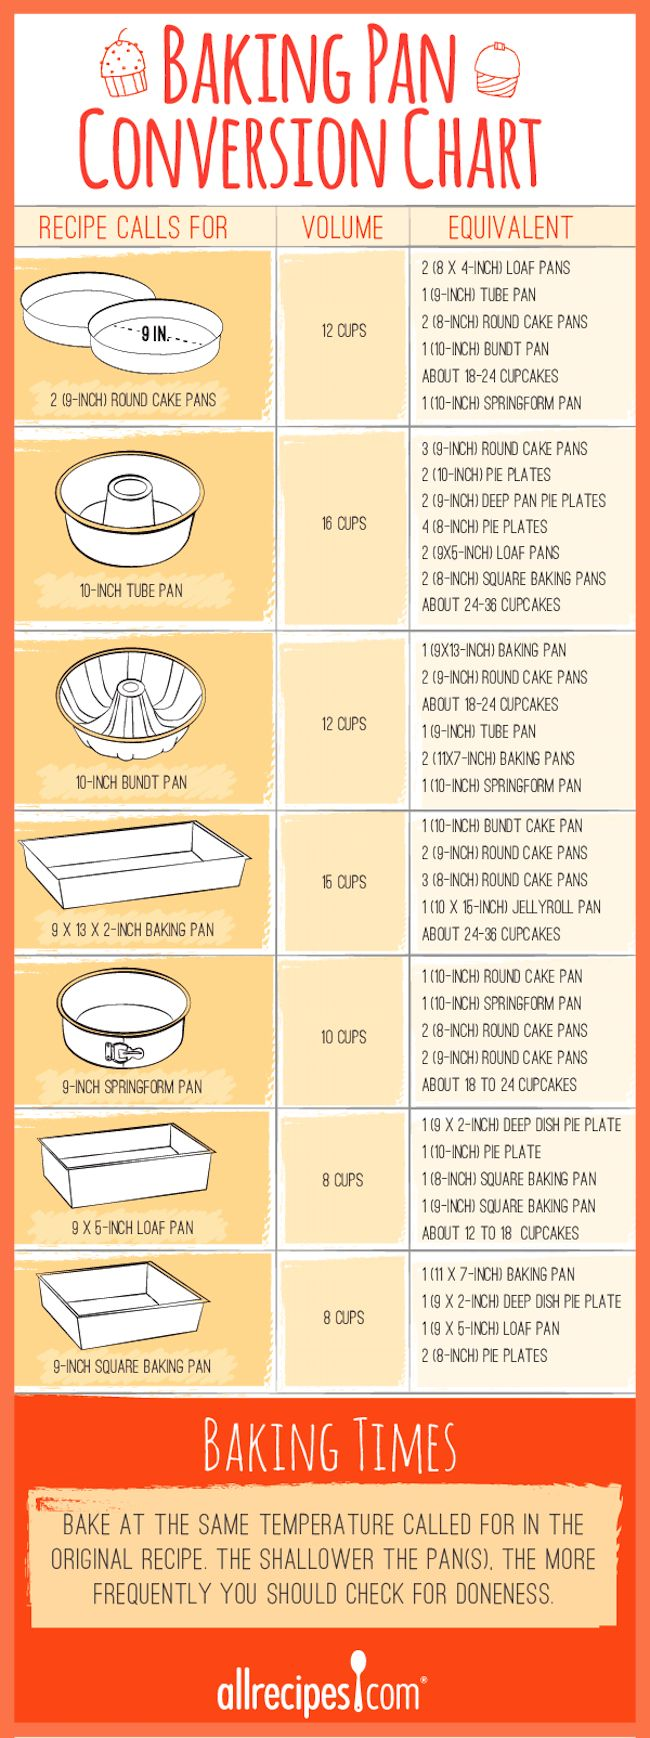 GREAT kitchen cheat sheets!!